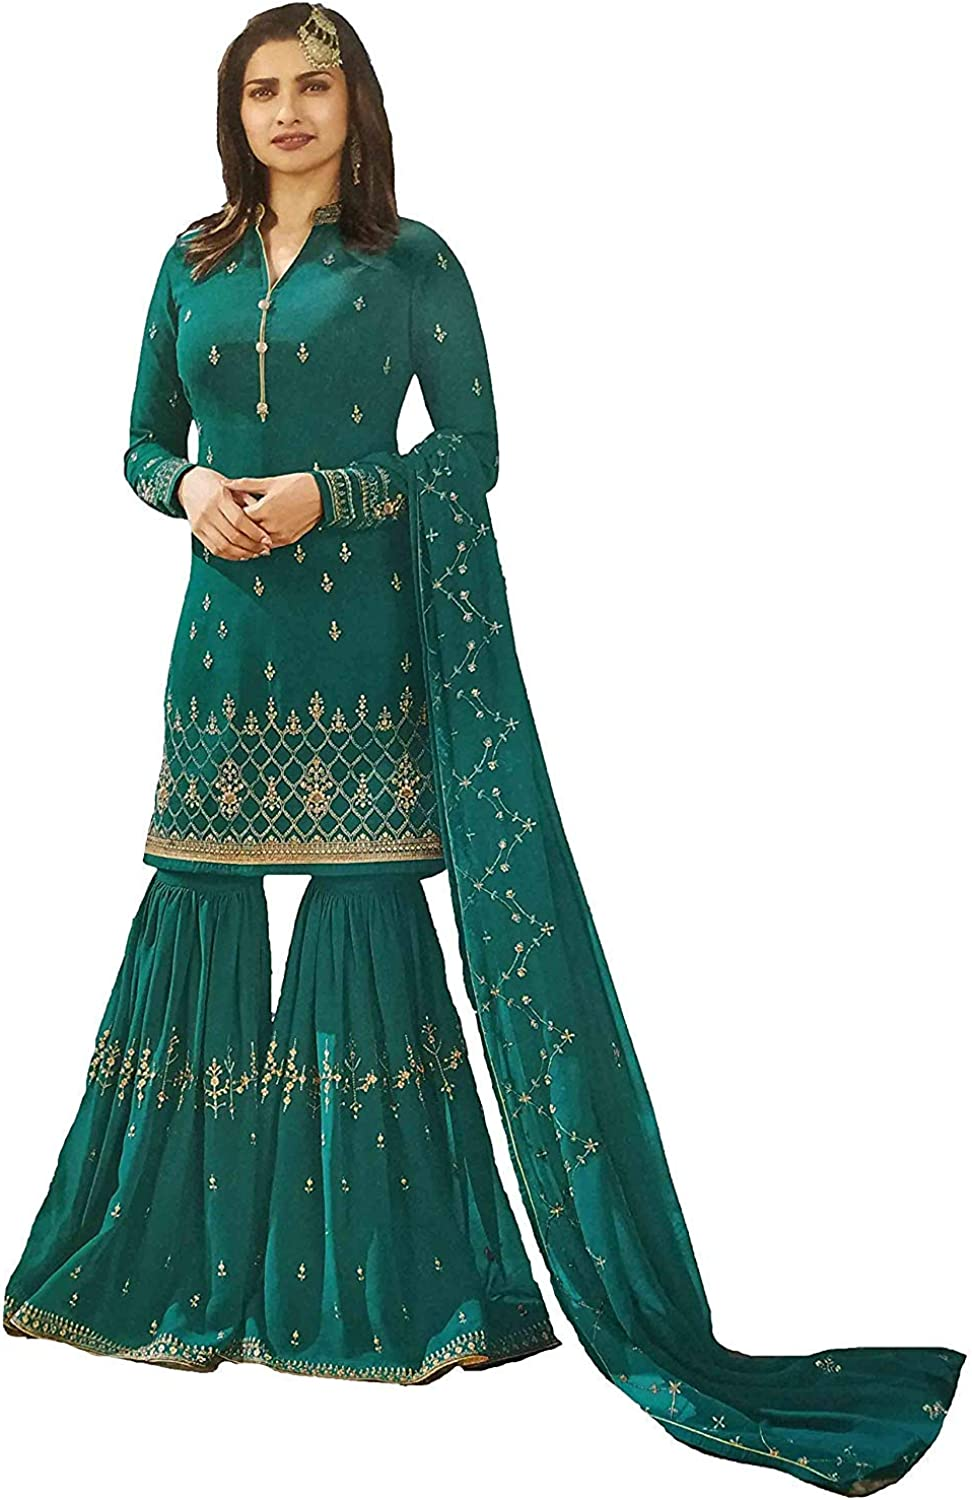 Stylishfashion Net Latest Embroidered and with Beautiful Anarkali Designer Salwar Kameez Wedding Party Suit